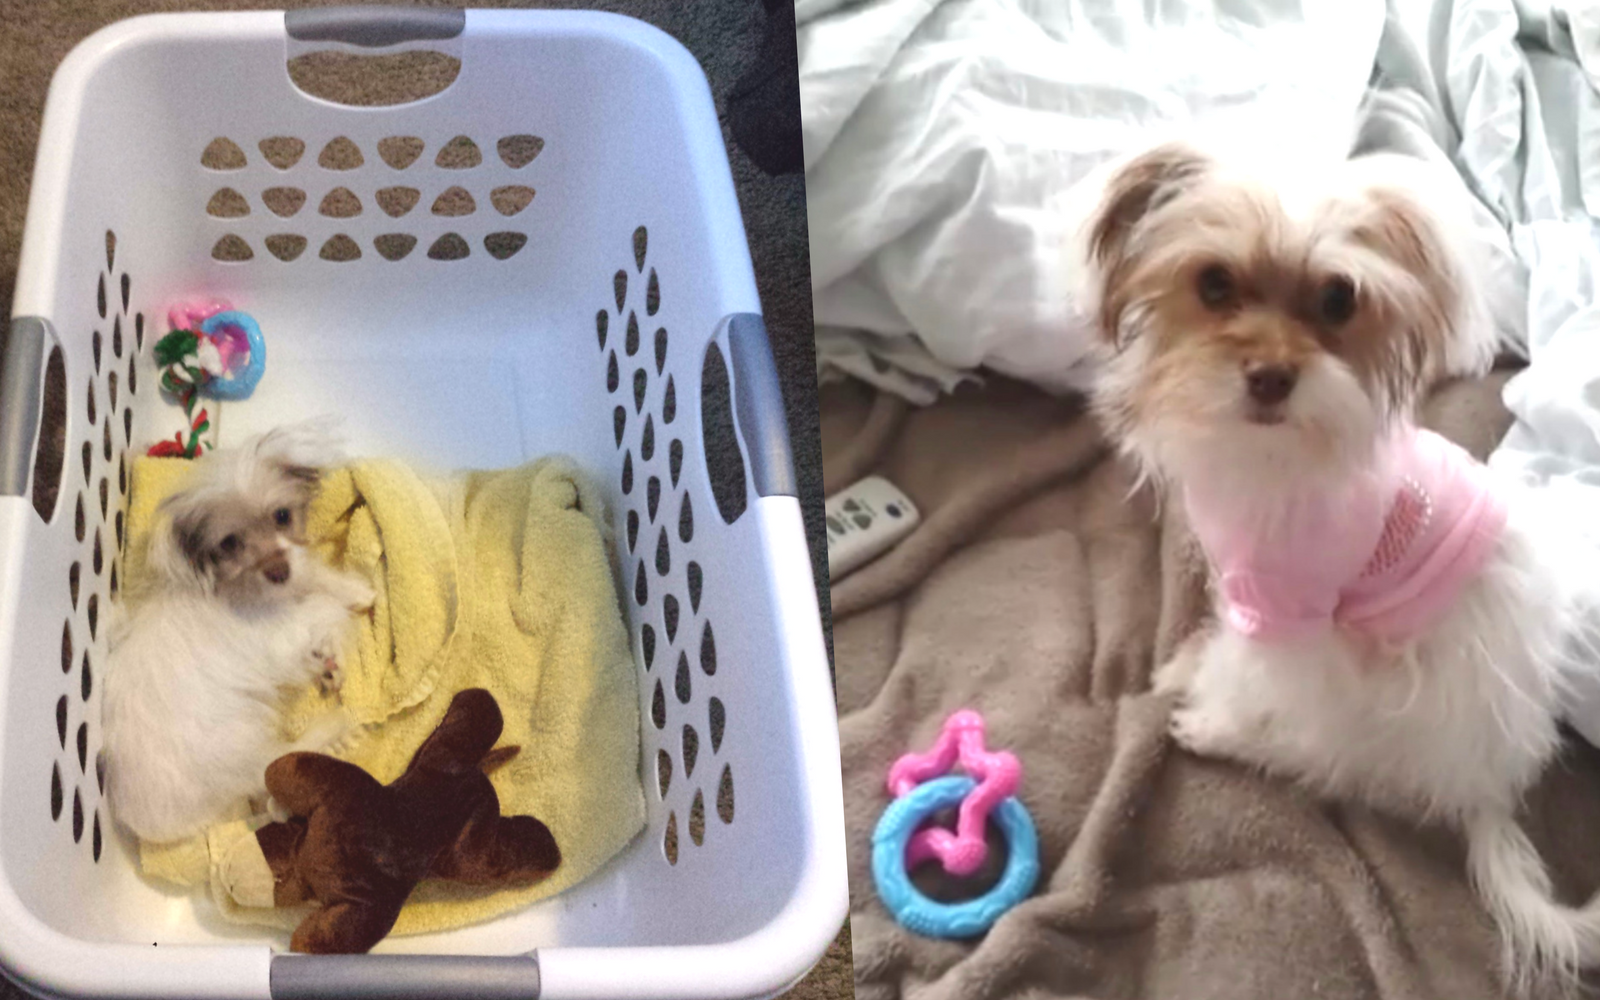 Dog Toy Sale Alert! Nylabone Teething Toys 40% Off at Amazon + Review